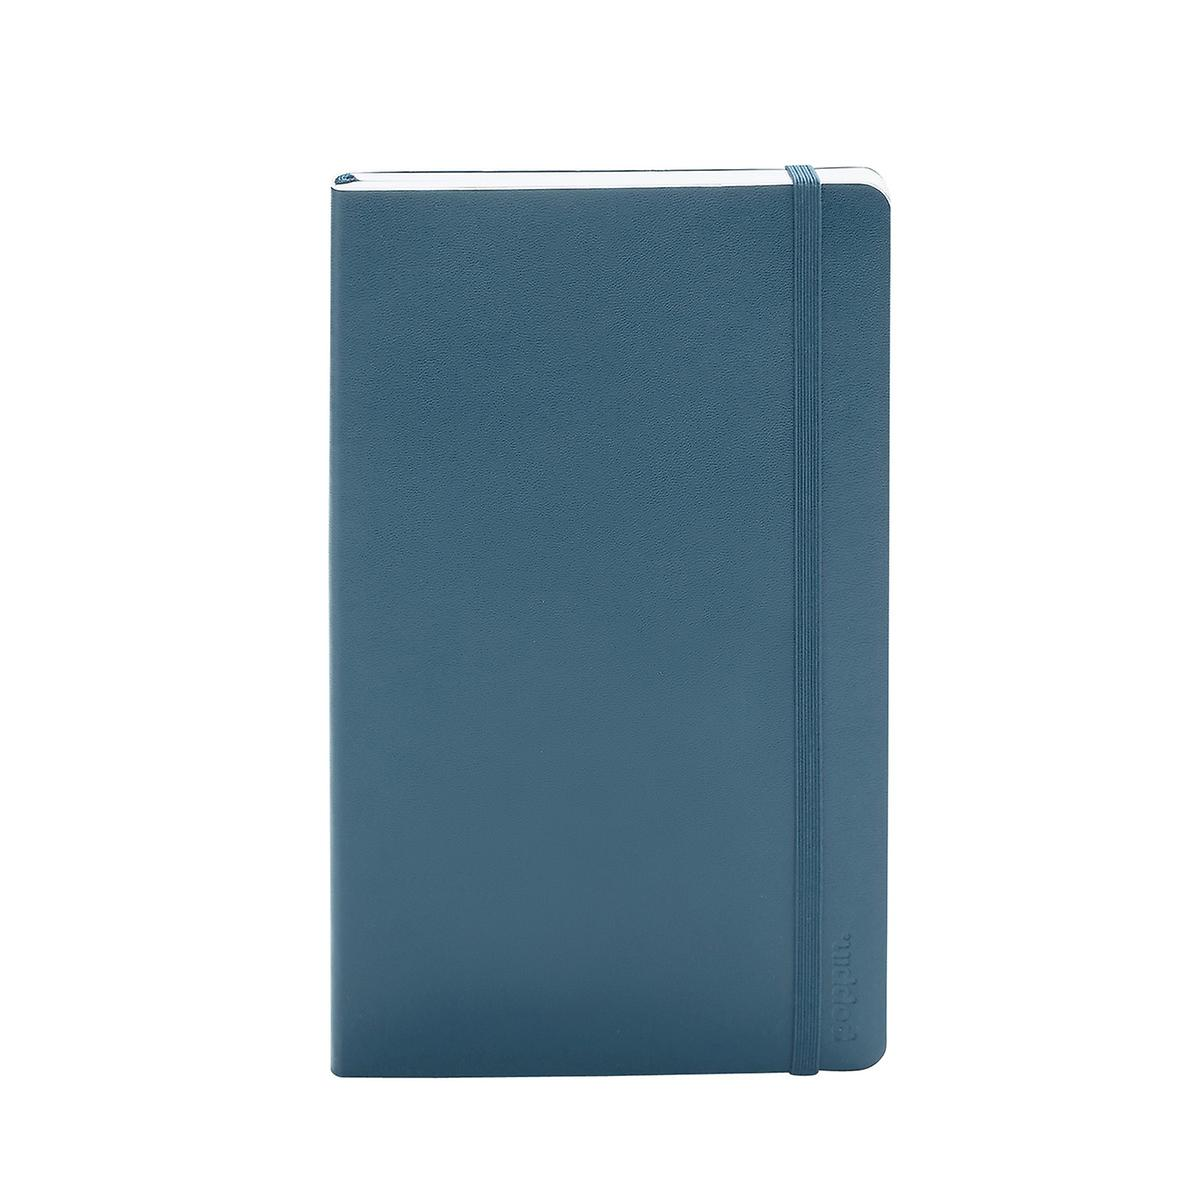 Slate Blue Poppin Medium Soft Cover Notebook